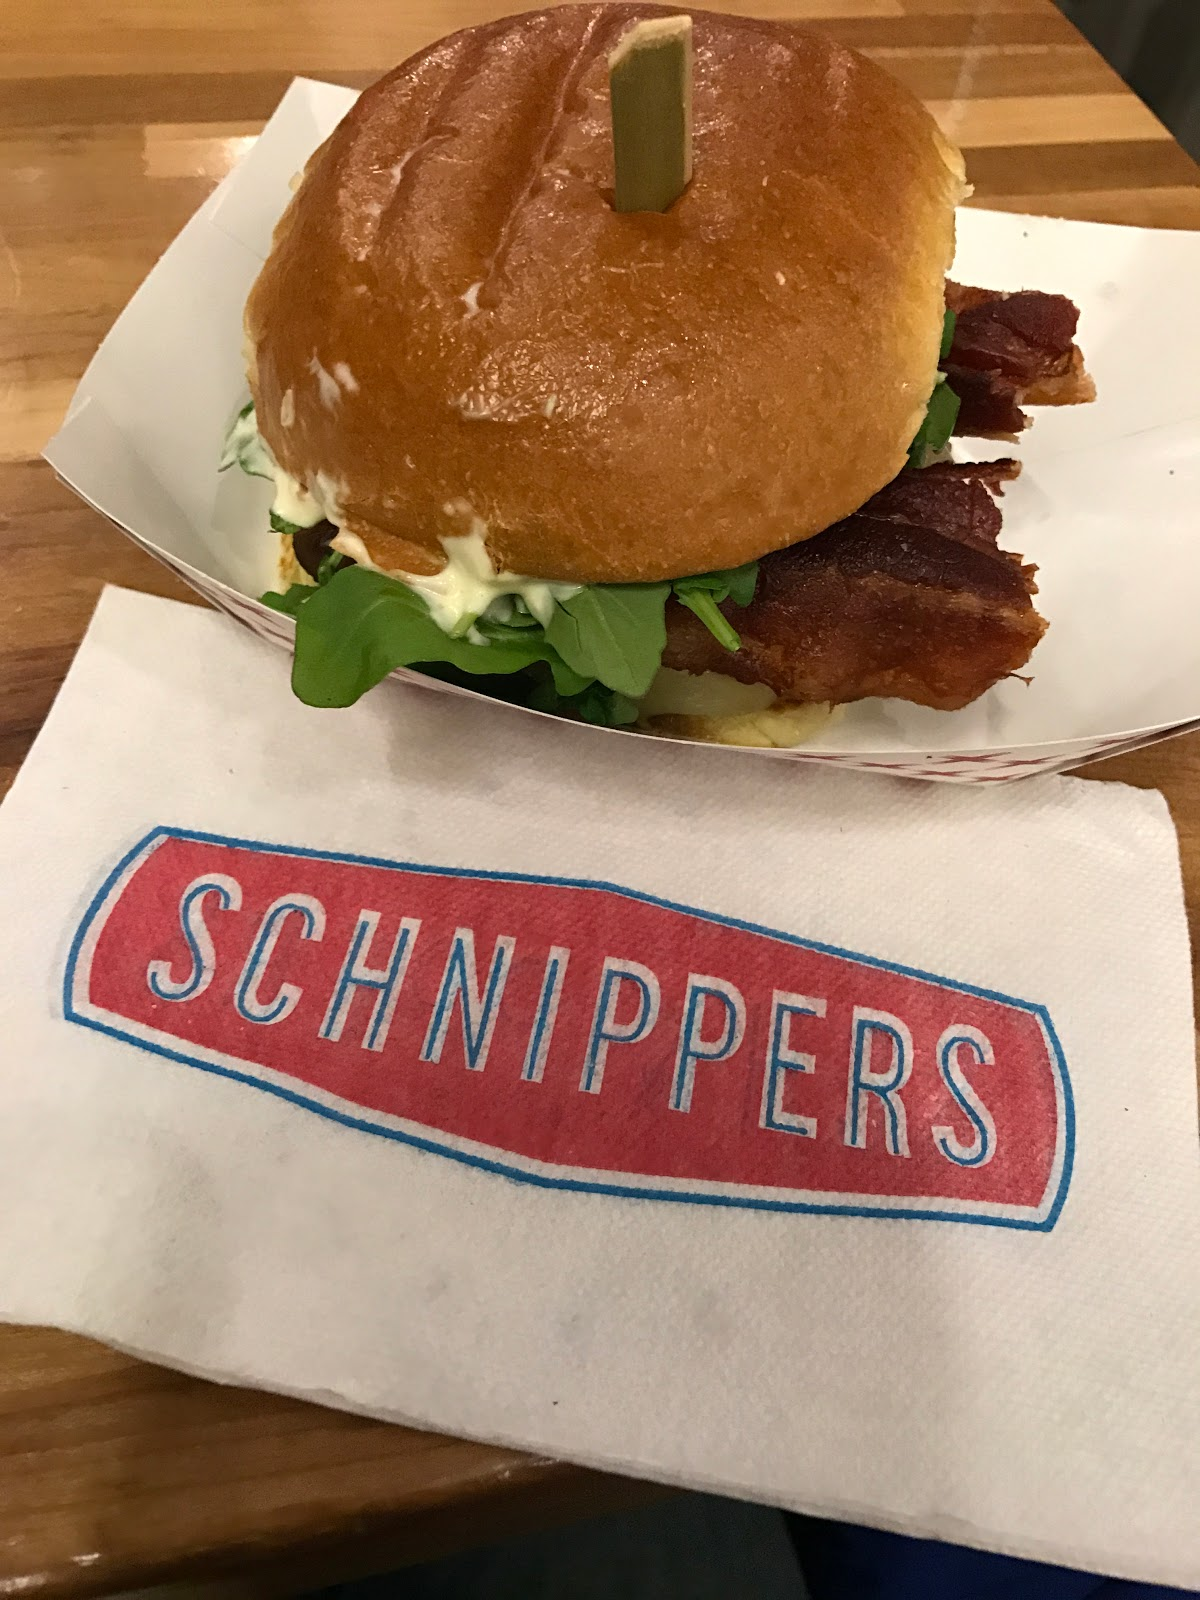 EAT UP IN NYC: SCHNIPPERS